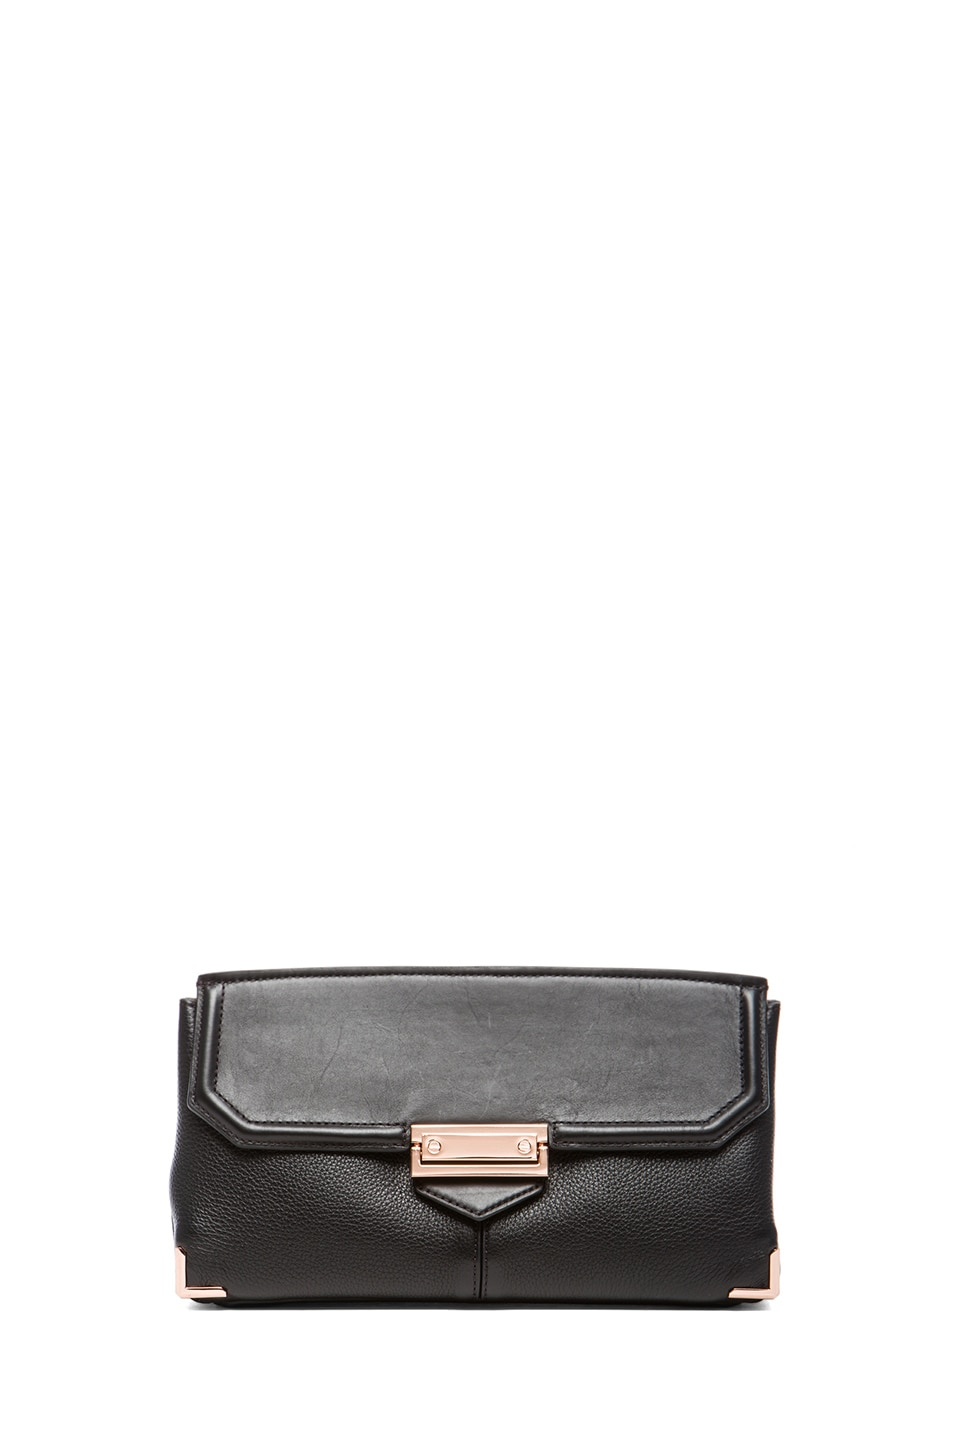 Image 1 of Alexander Wang Prisma Skeletal Clutch with Rhodium Hardware in Black